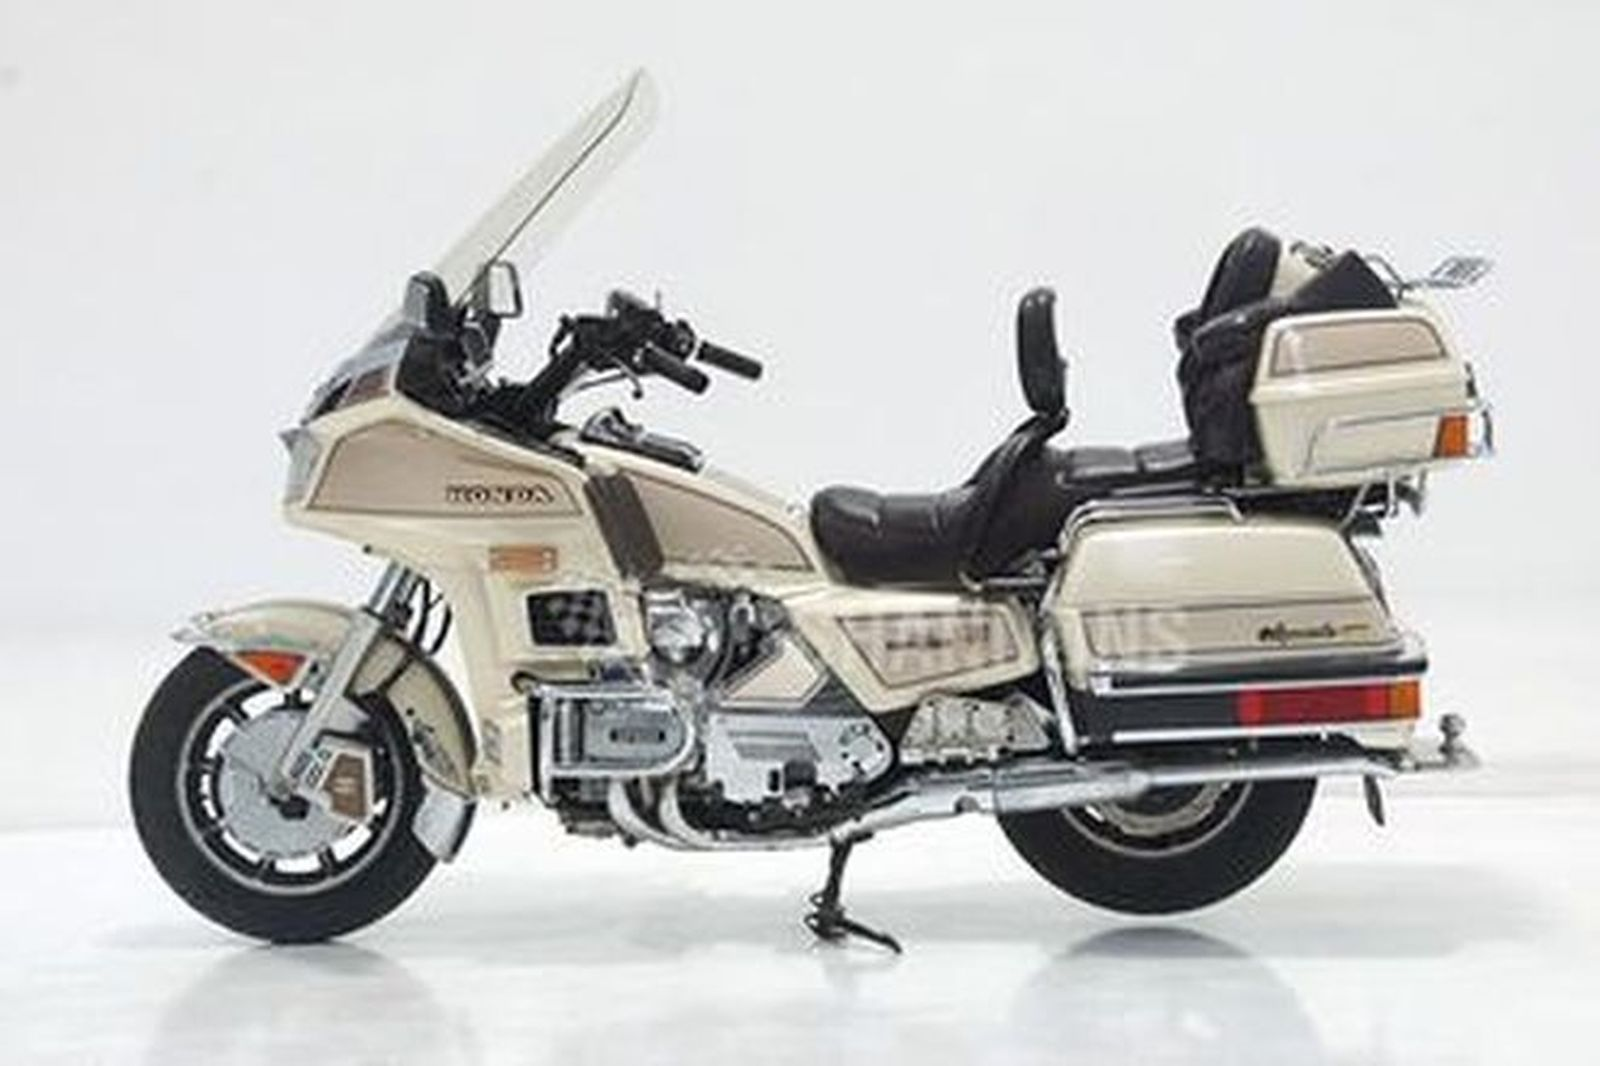 Honda Aspencade Goldwing 1200cc Motorcycle